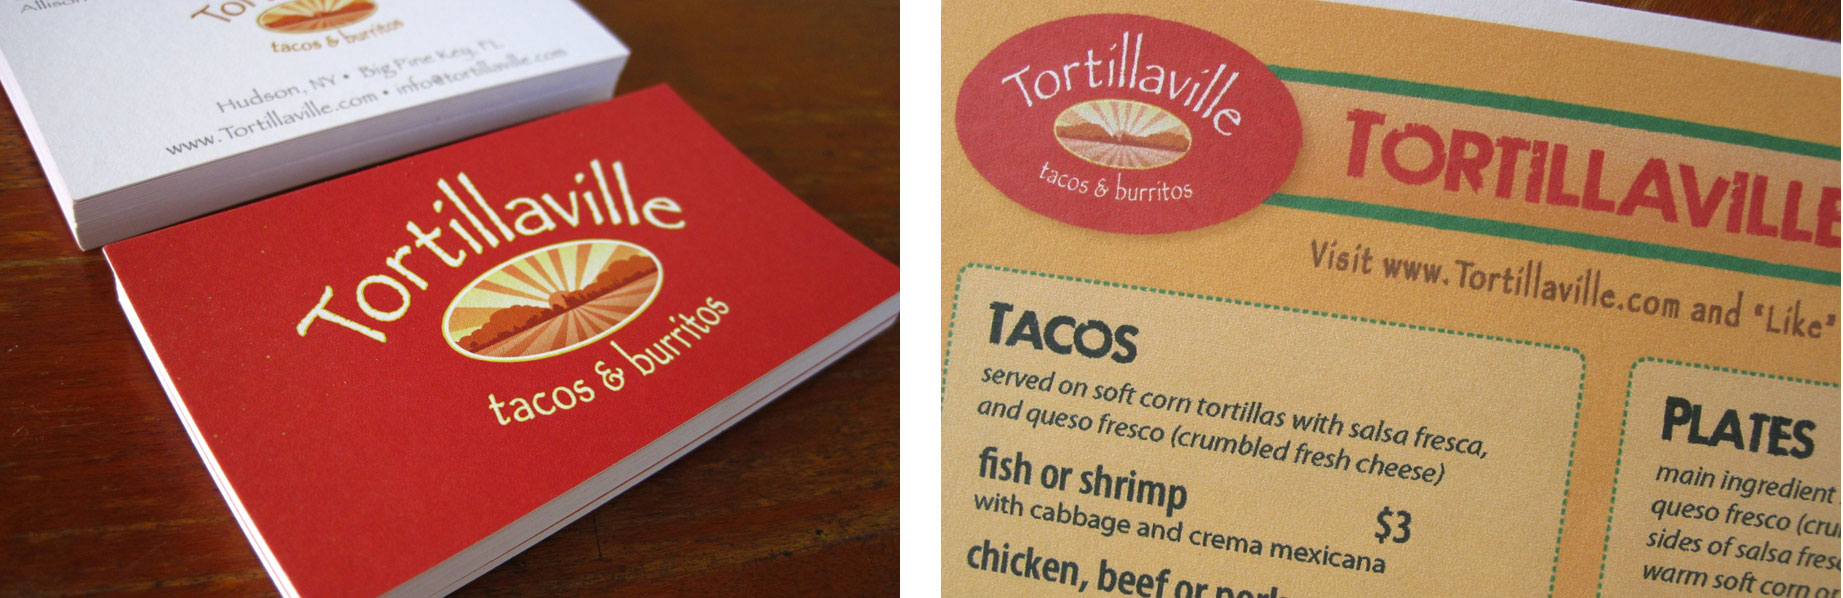 Tortillaville Business Cards & Menu